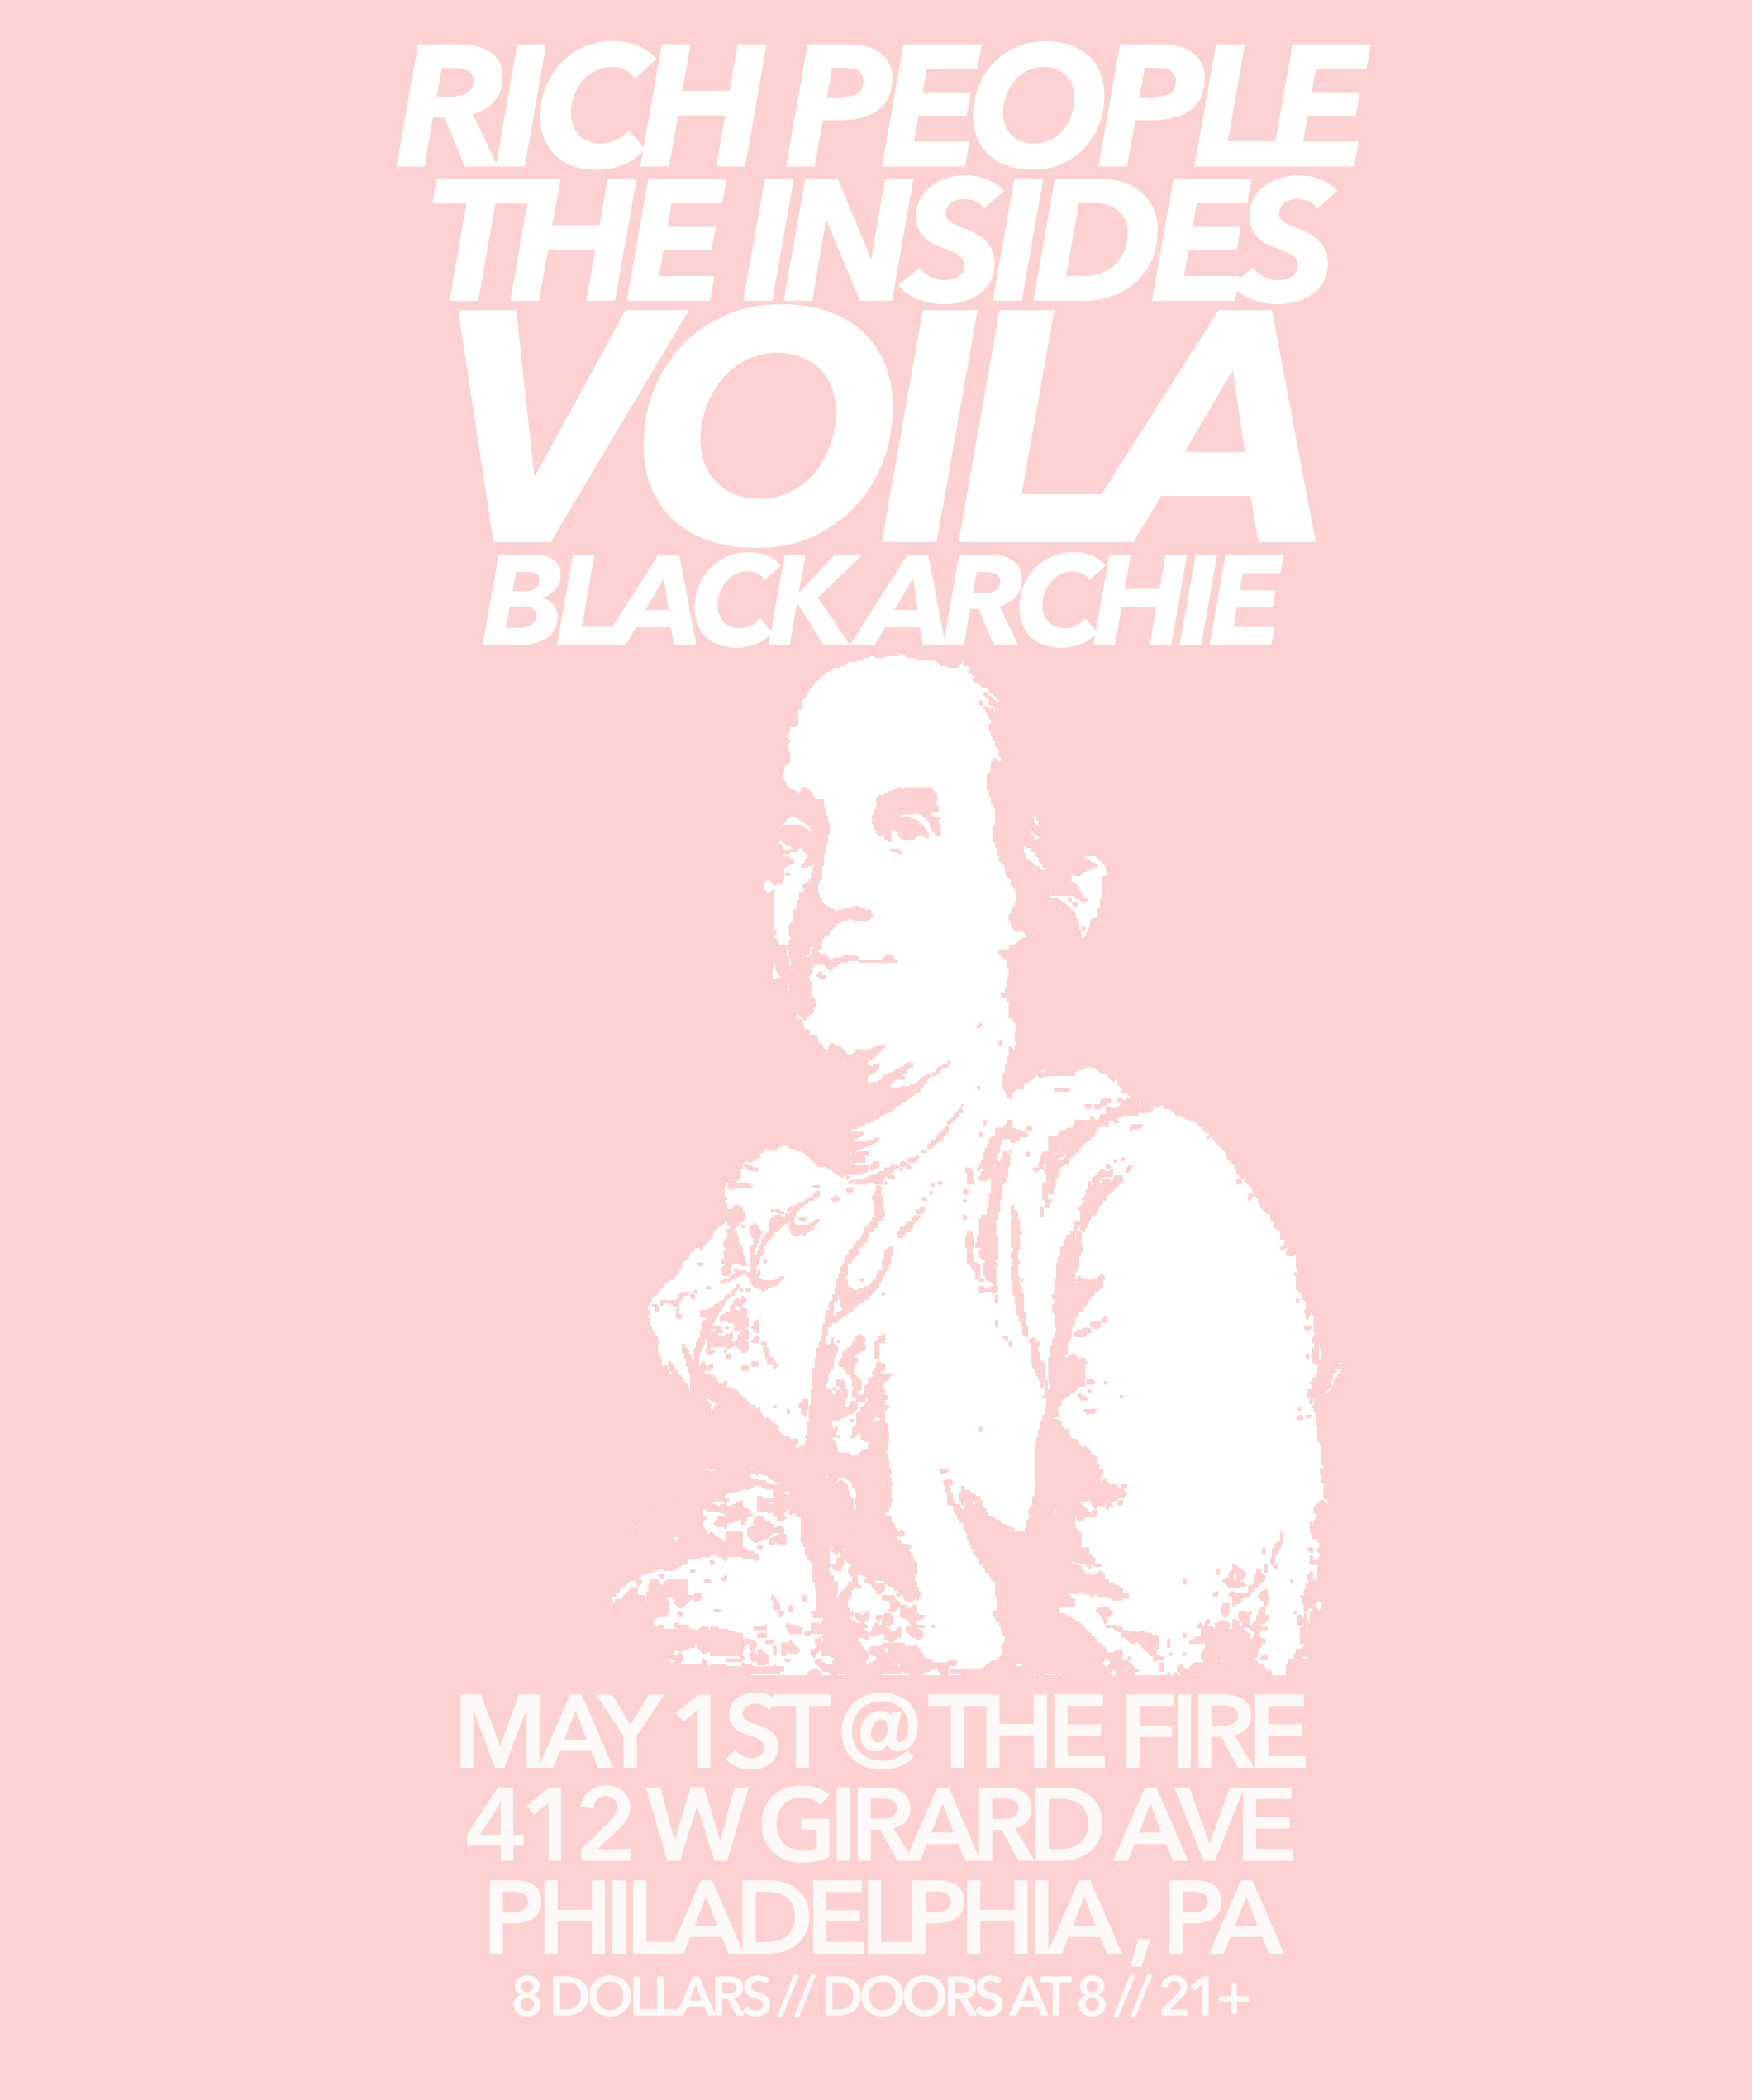 The-Fire-Insides-Show-Flyer.jpg